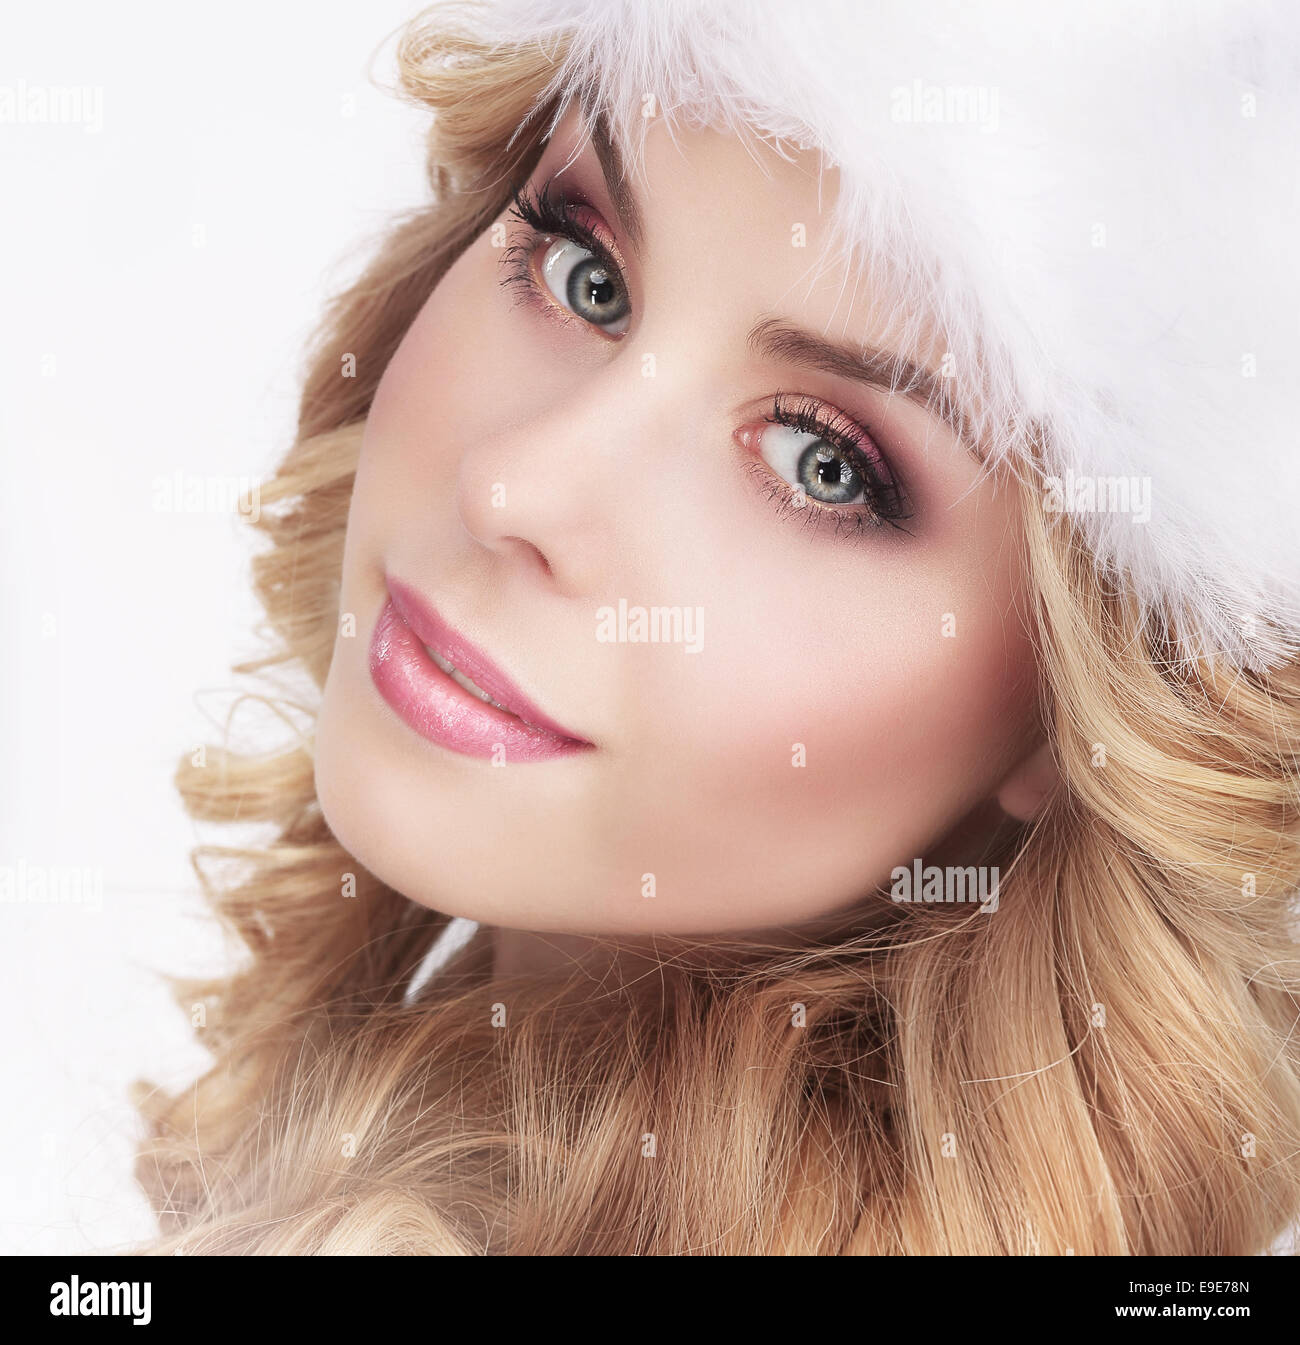 Cute Young Woman in Furry White Cap - Stock Image